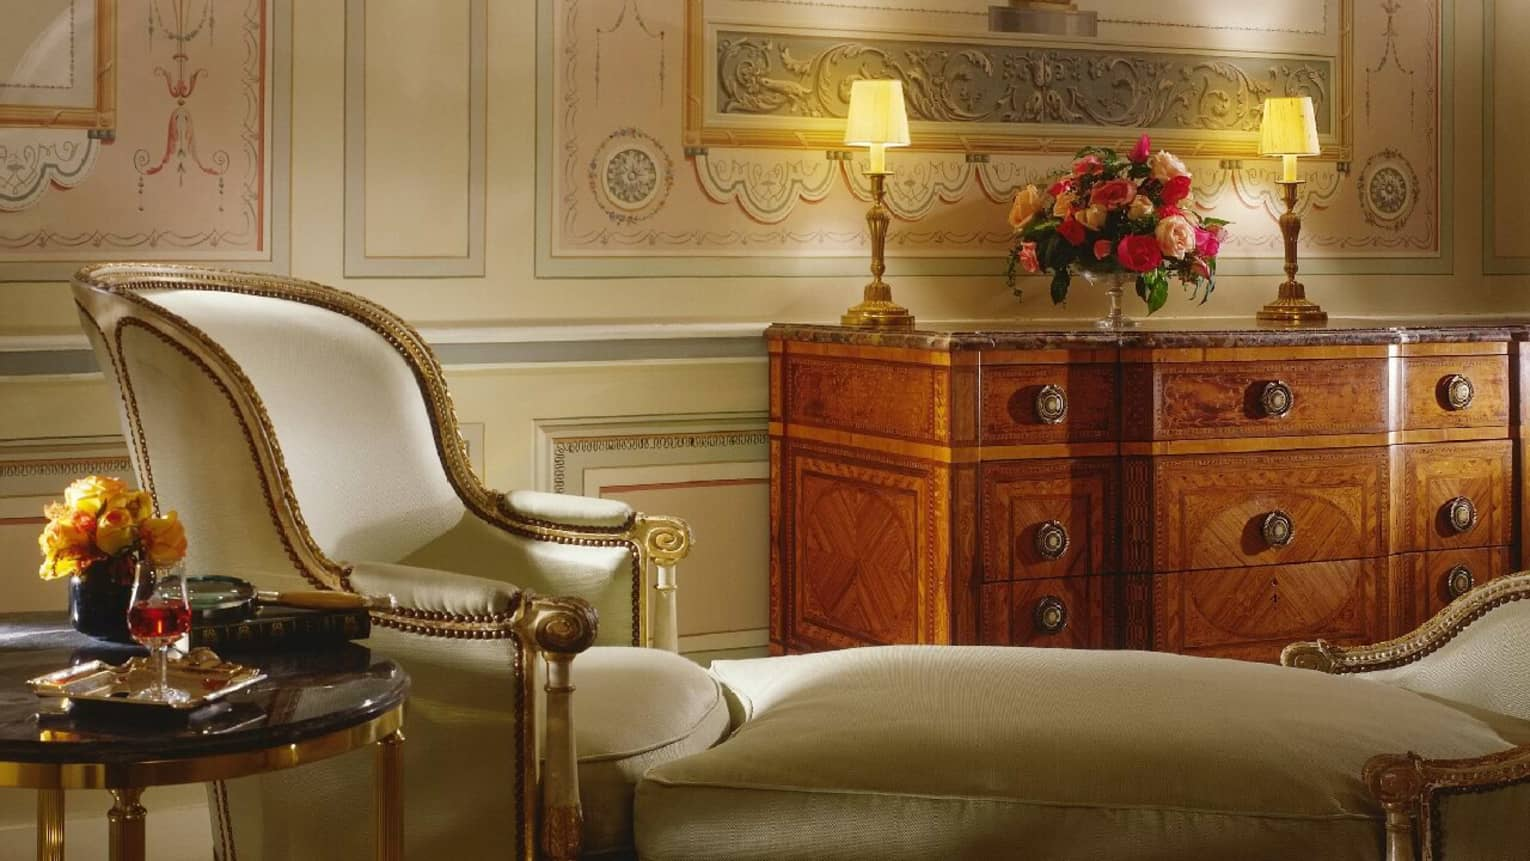 Close-up of Presidential Suite antique-style satin armchair with gold wood trim, ottoman, table with wine and roses